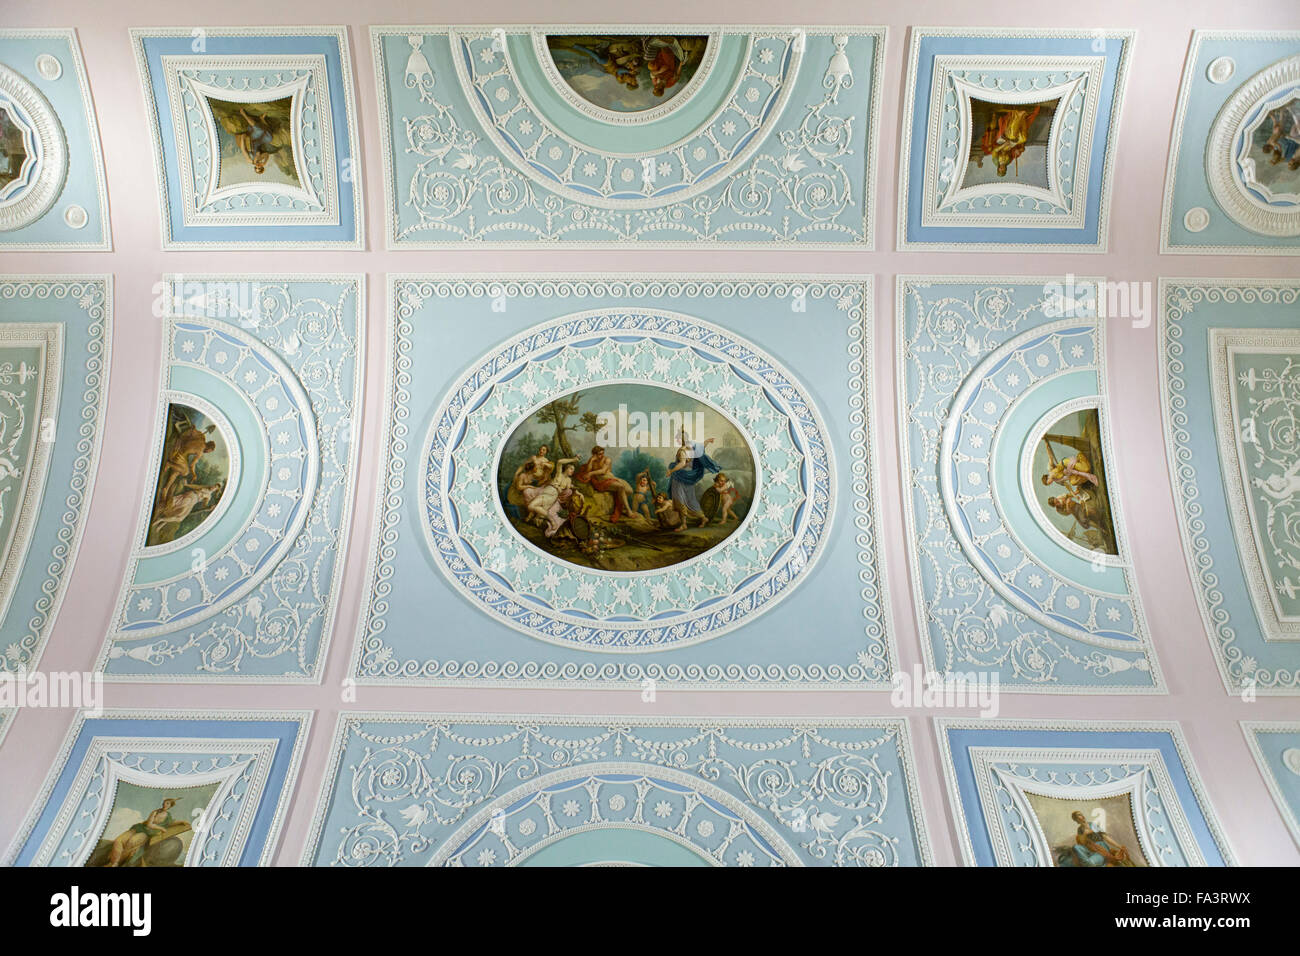 The ceiling of the Robert Adam library in Kenwood House, Hampstead, London, England - Stock Image